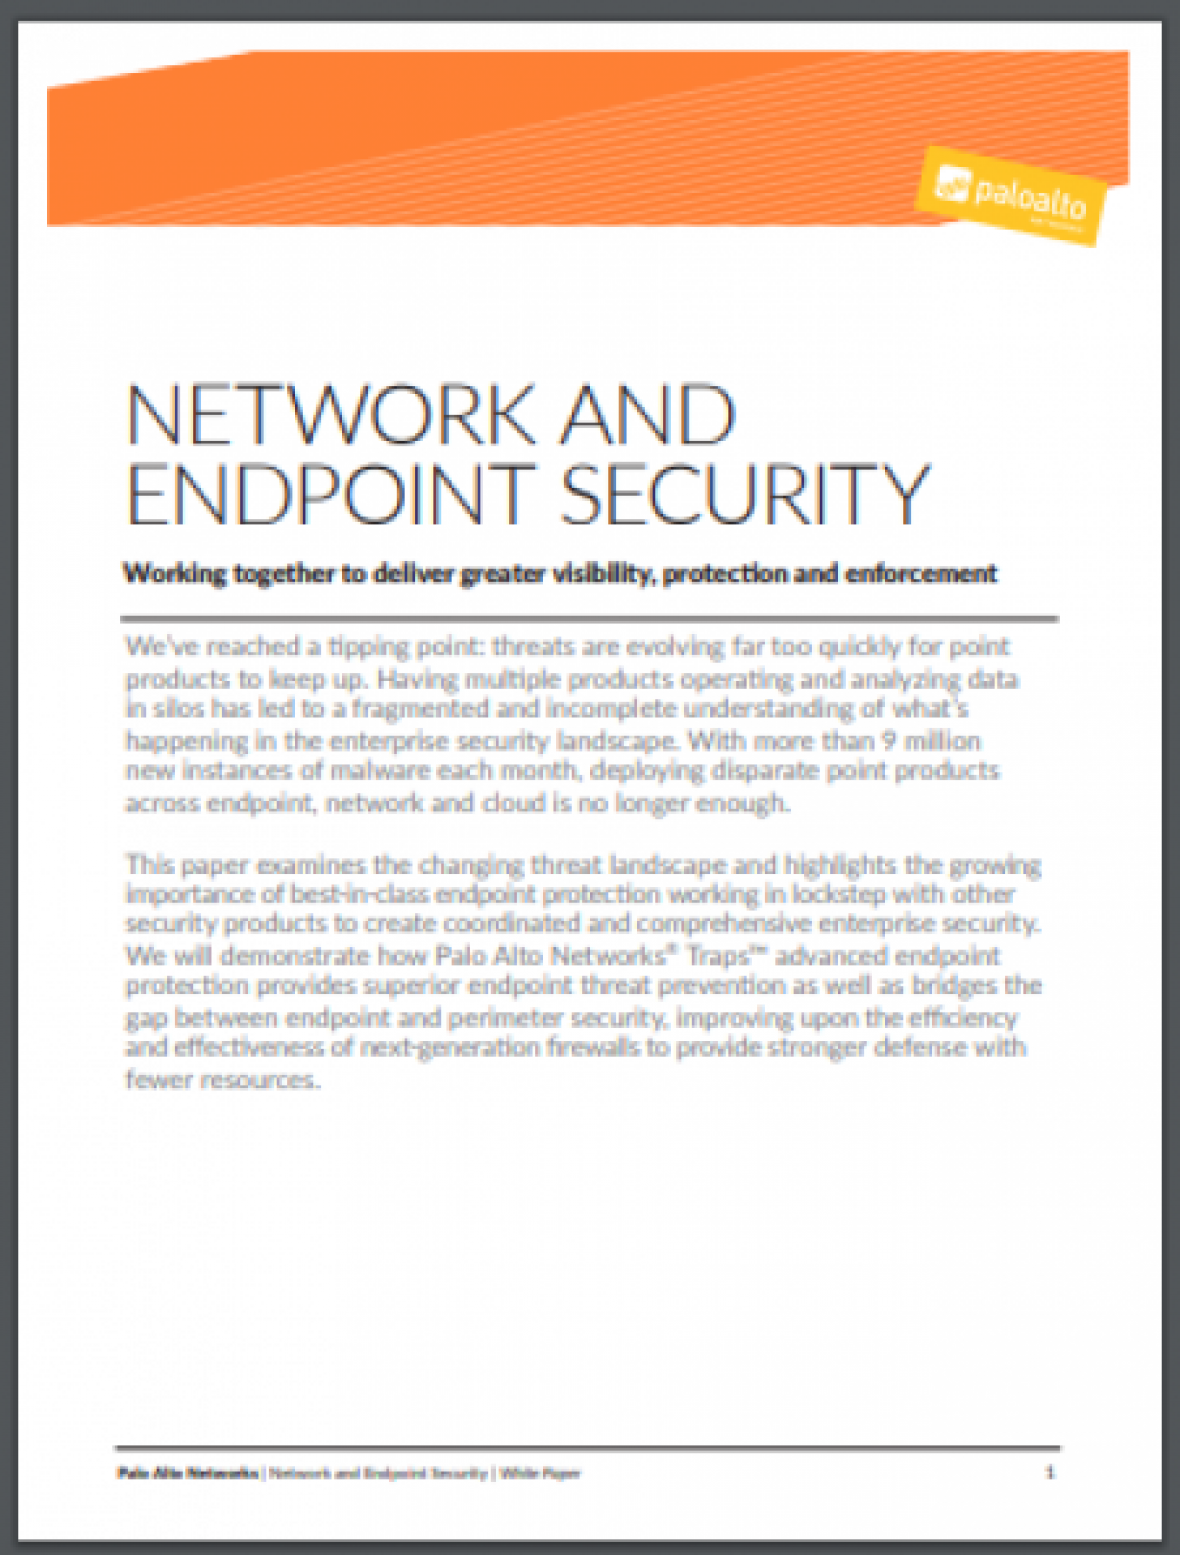 NETWORK AND ENDPOINT SECURITY